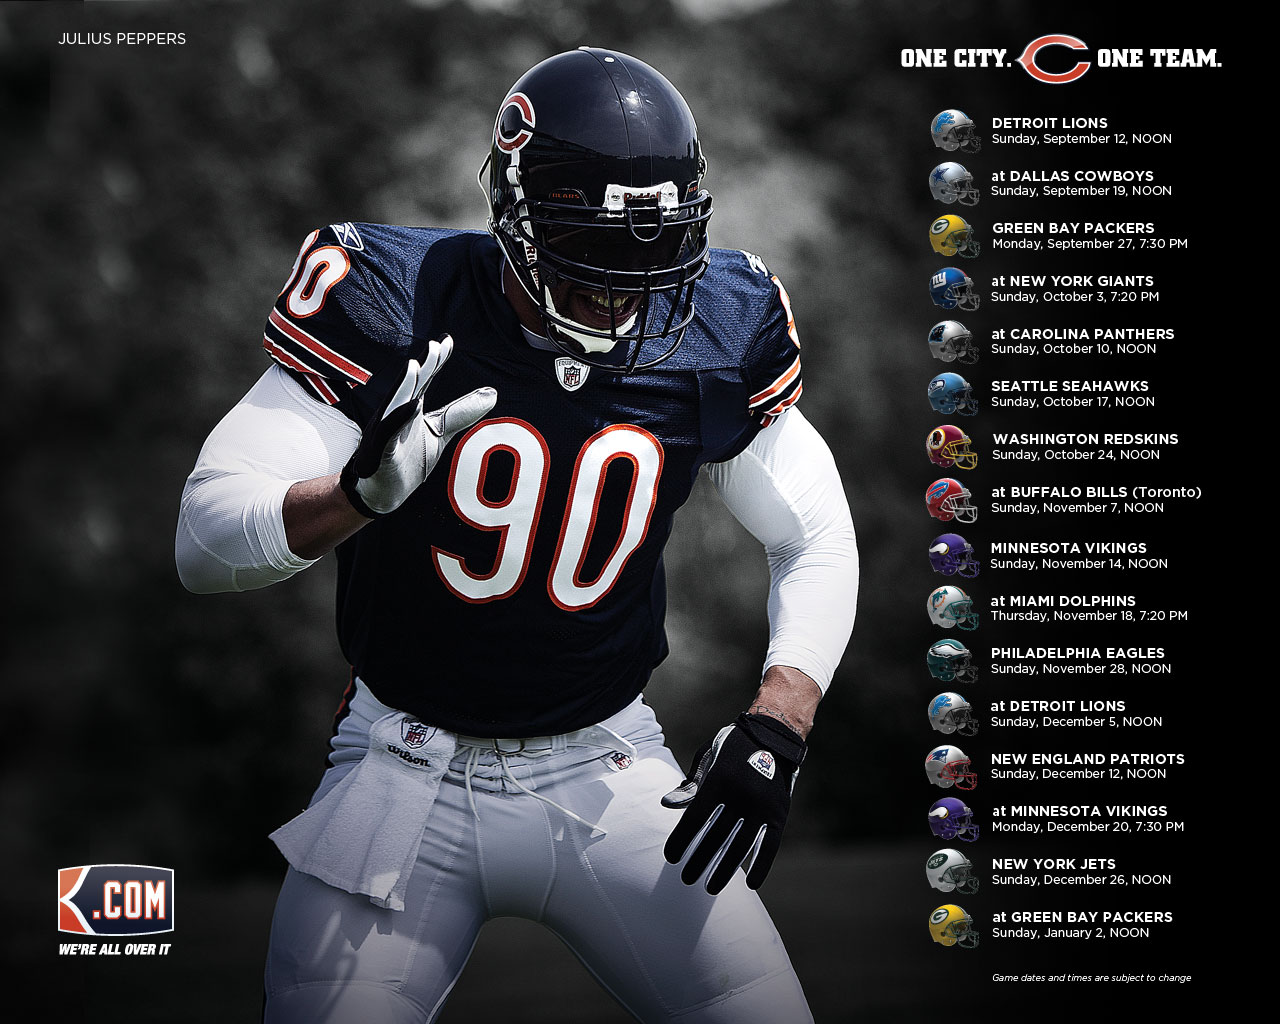 Chicago Bears wallpaper HD wallpaper Chicago Bears wallpapers 1280x1024